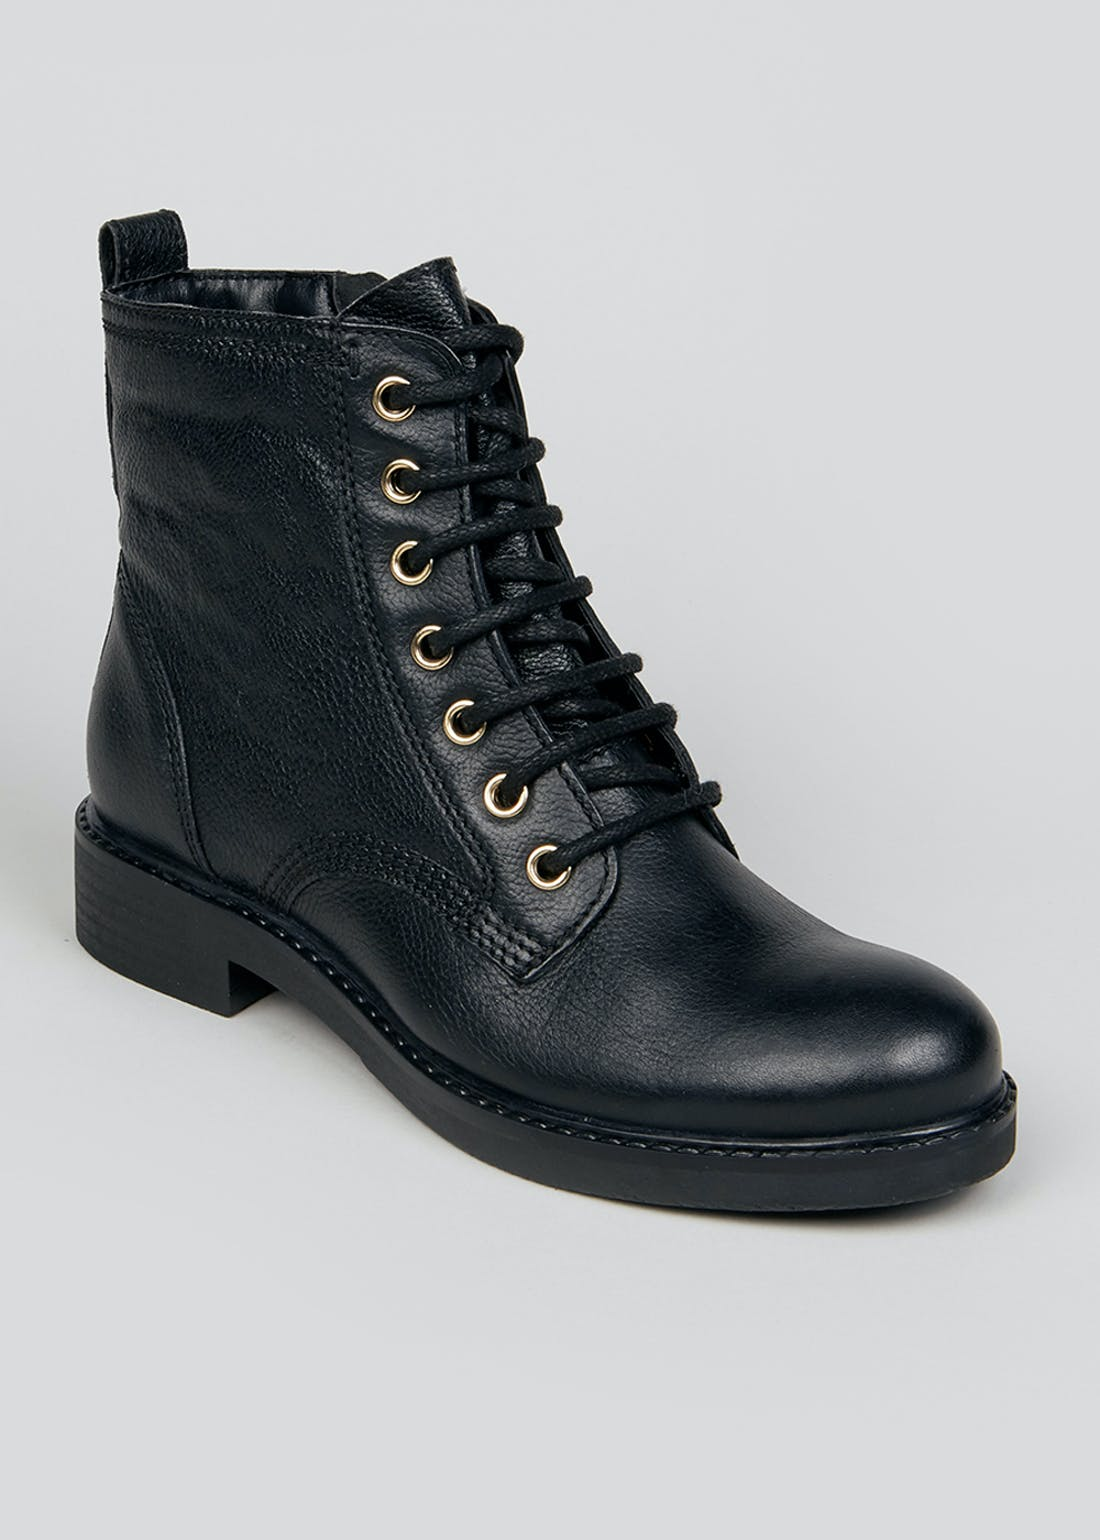 Soleflex Black Leather Lace Up Boots